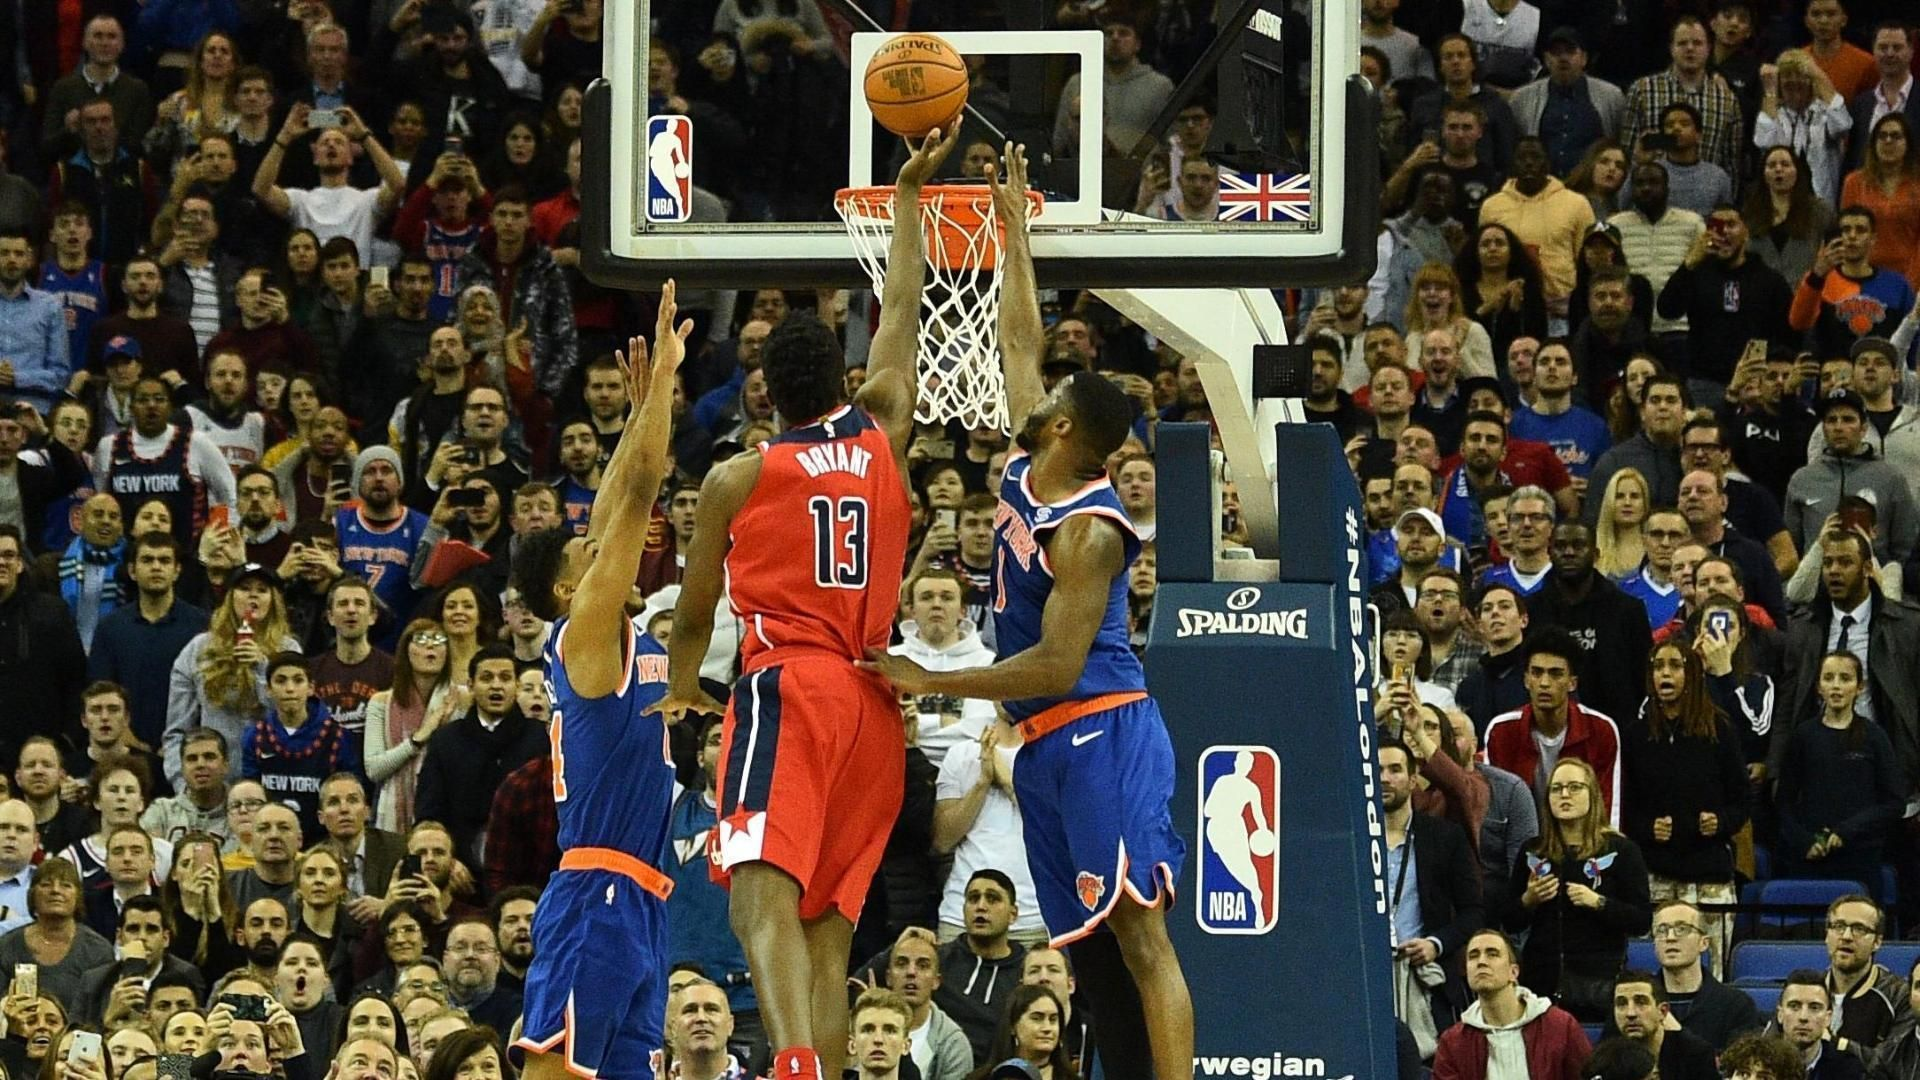 https://secure.espncdn.com/combiner/i?img=/media/motion/2019/0117/dm_190117_nba_knicks_wizards_ending1089/dm_190117_nba_knicks_wizards_ending1089.jpg